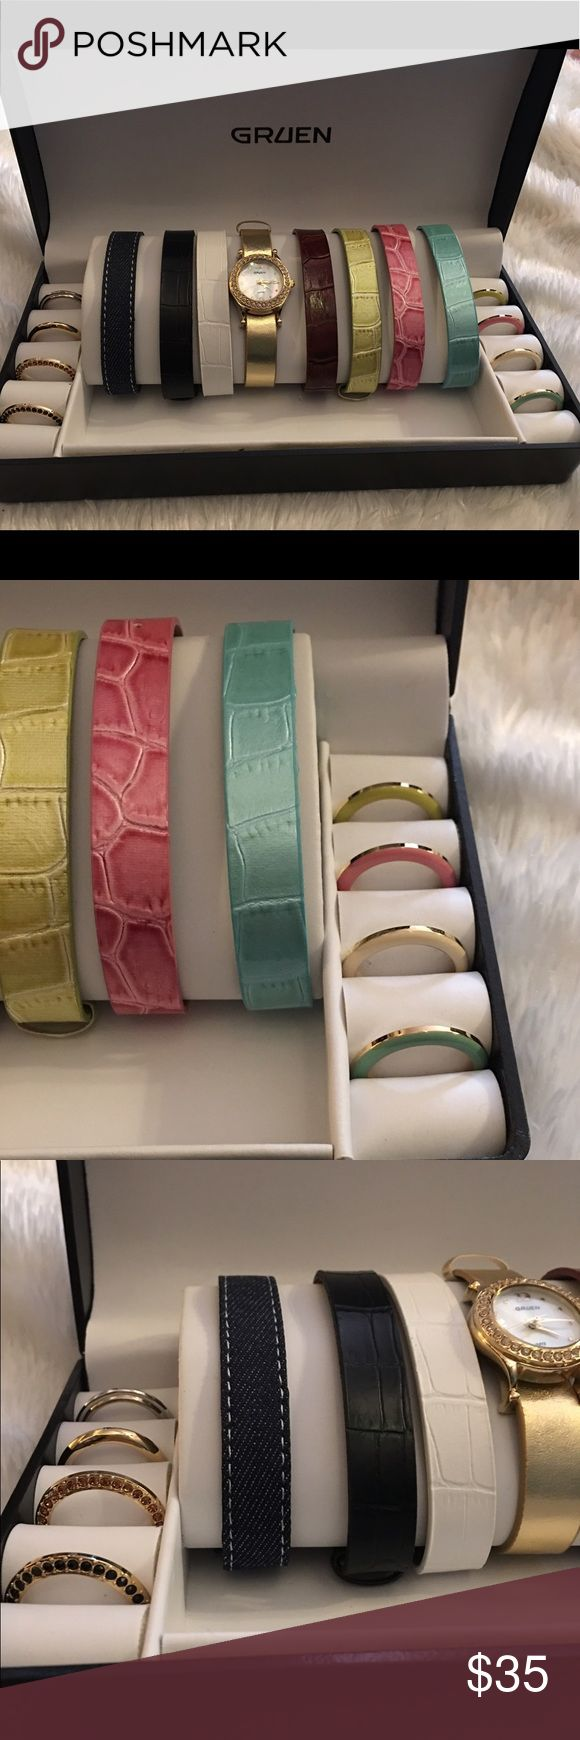 Gruen watch set with 8 bands & 9 face rings Gruen watch set with 8 interchangeable watch bands and 9 interchangeable twist on face rings. Gold toned. Needs new battery. Otherwise in working order and in excellent condition! Like New!💕 Gruen Accessories Watches